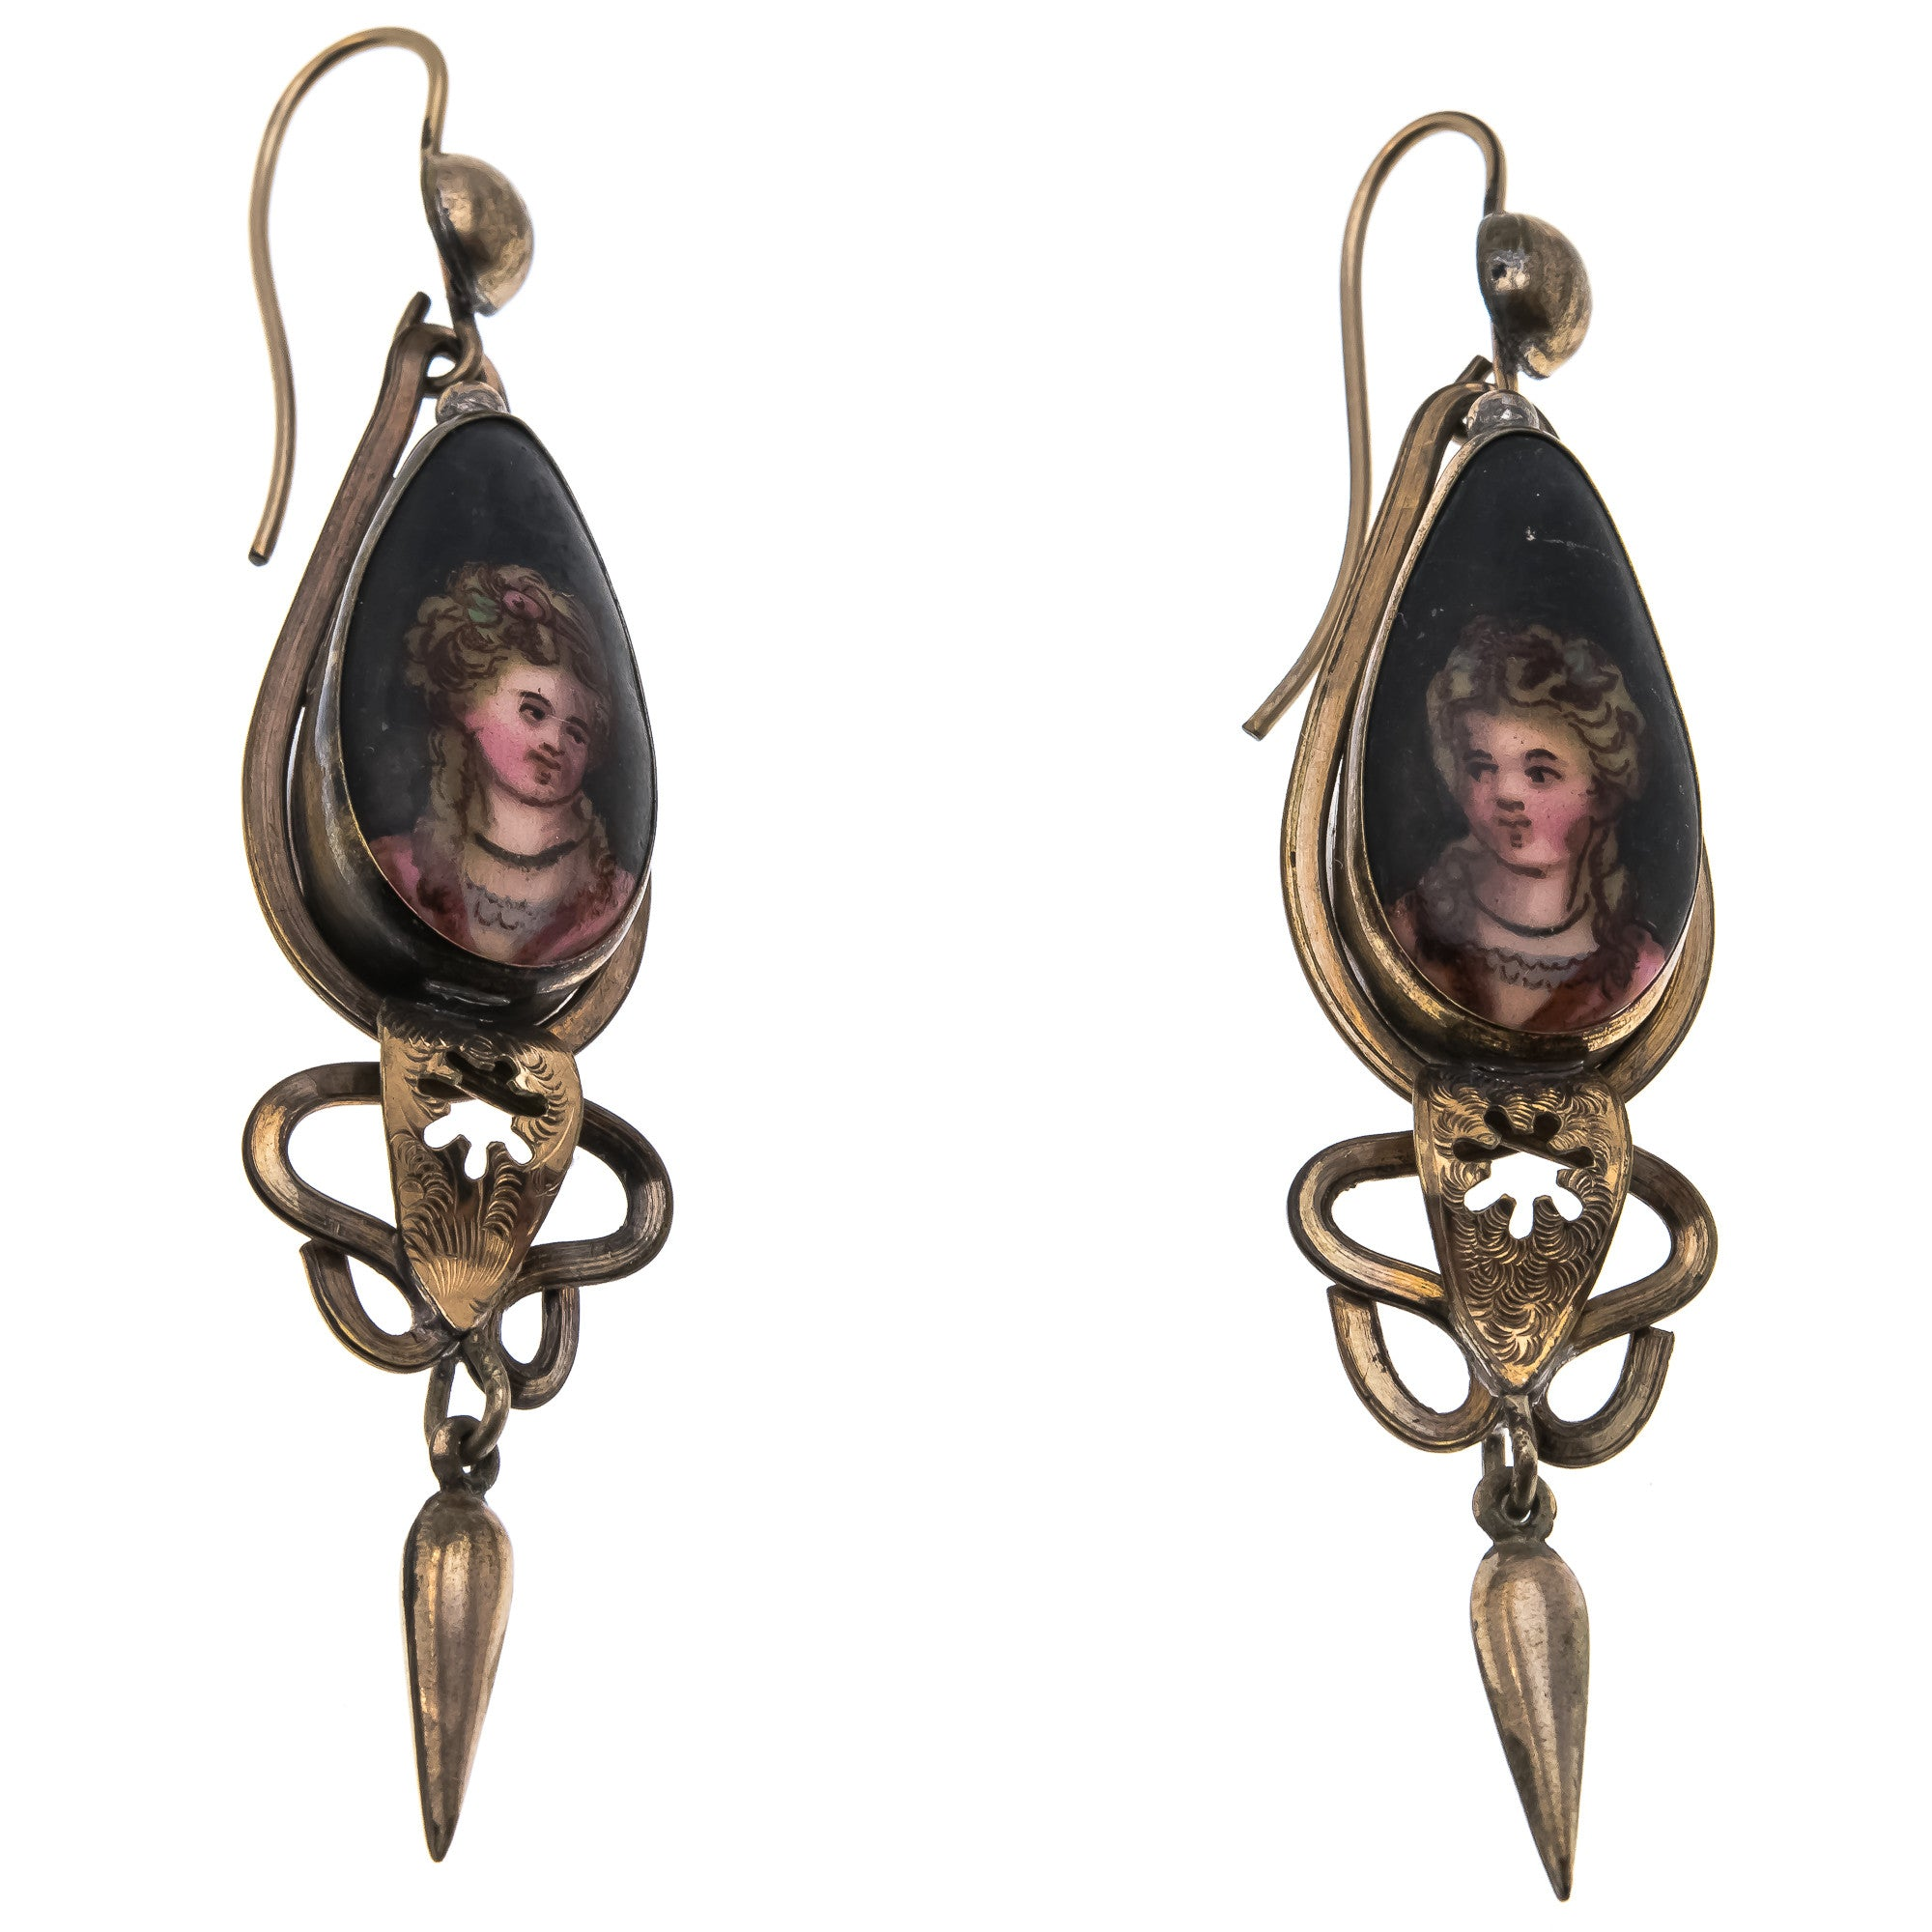 Victorian 1800s Pinchbeck Hand Painted Portrait Earrings